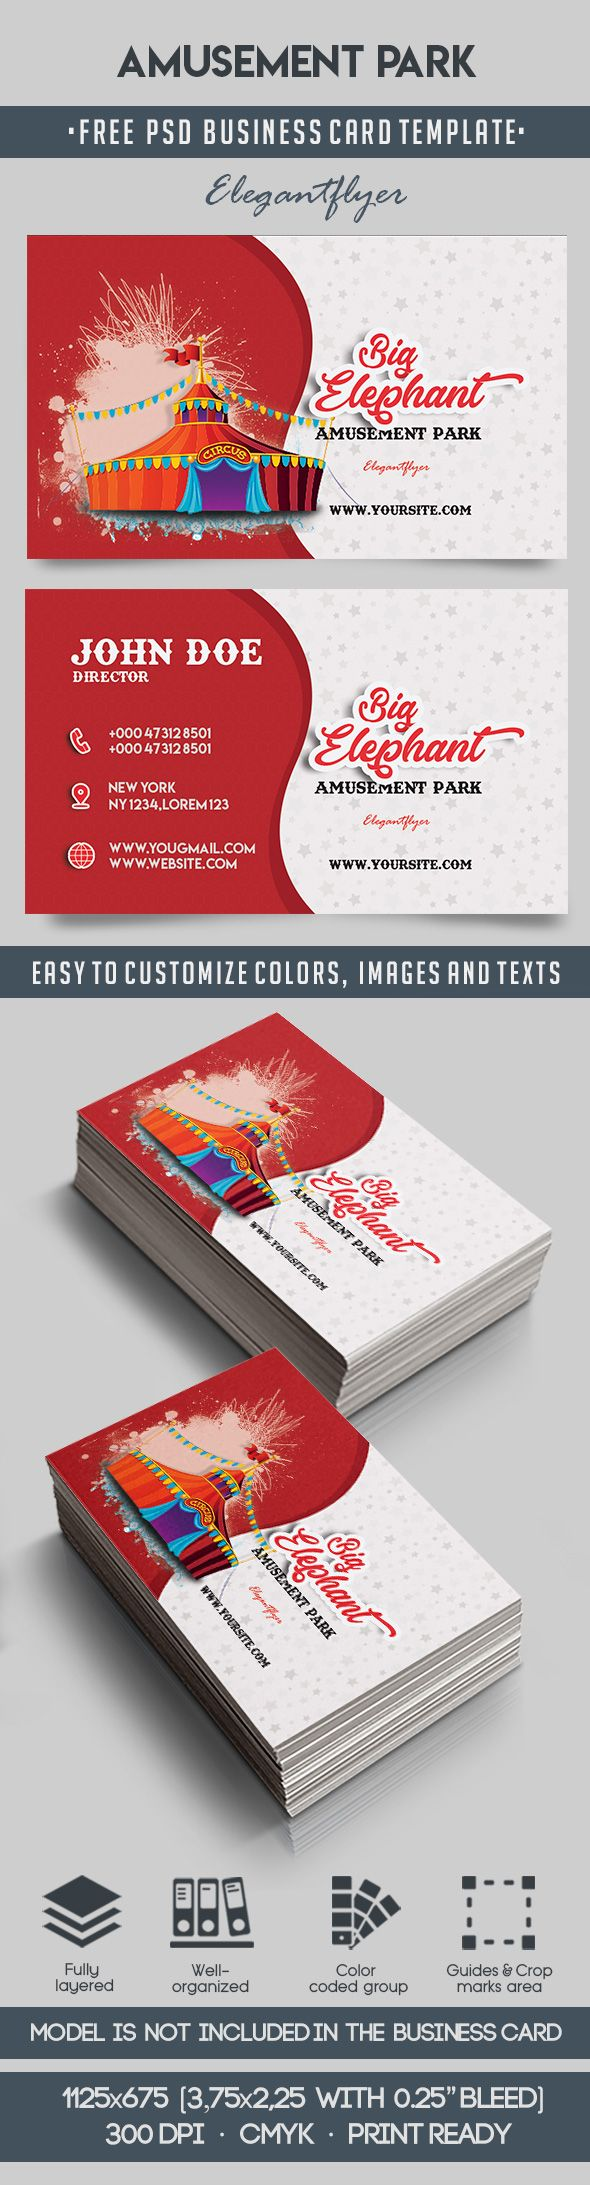 Amusement park free business card templates psd by elegantflyer amusement park free business card templates psd reheart Choice Image